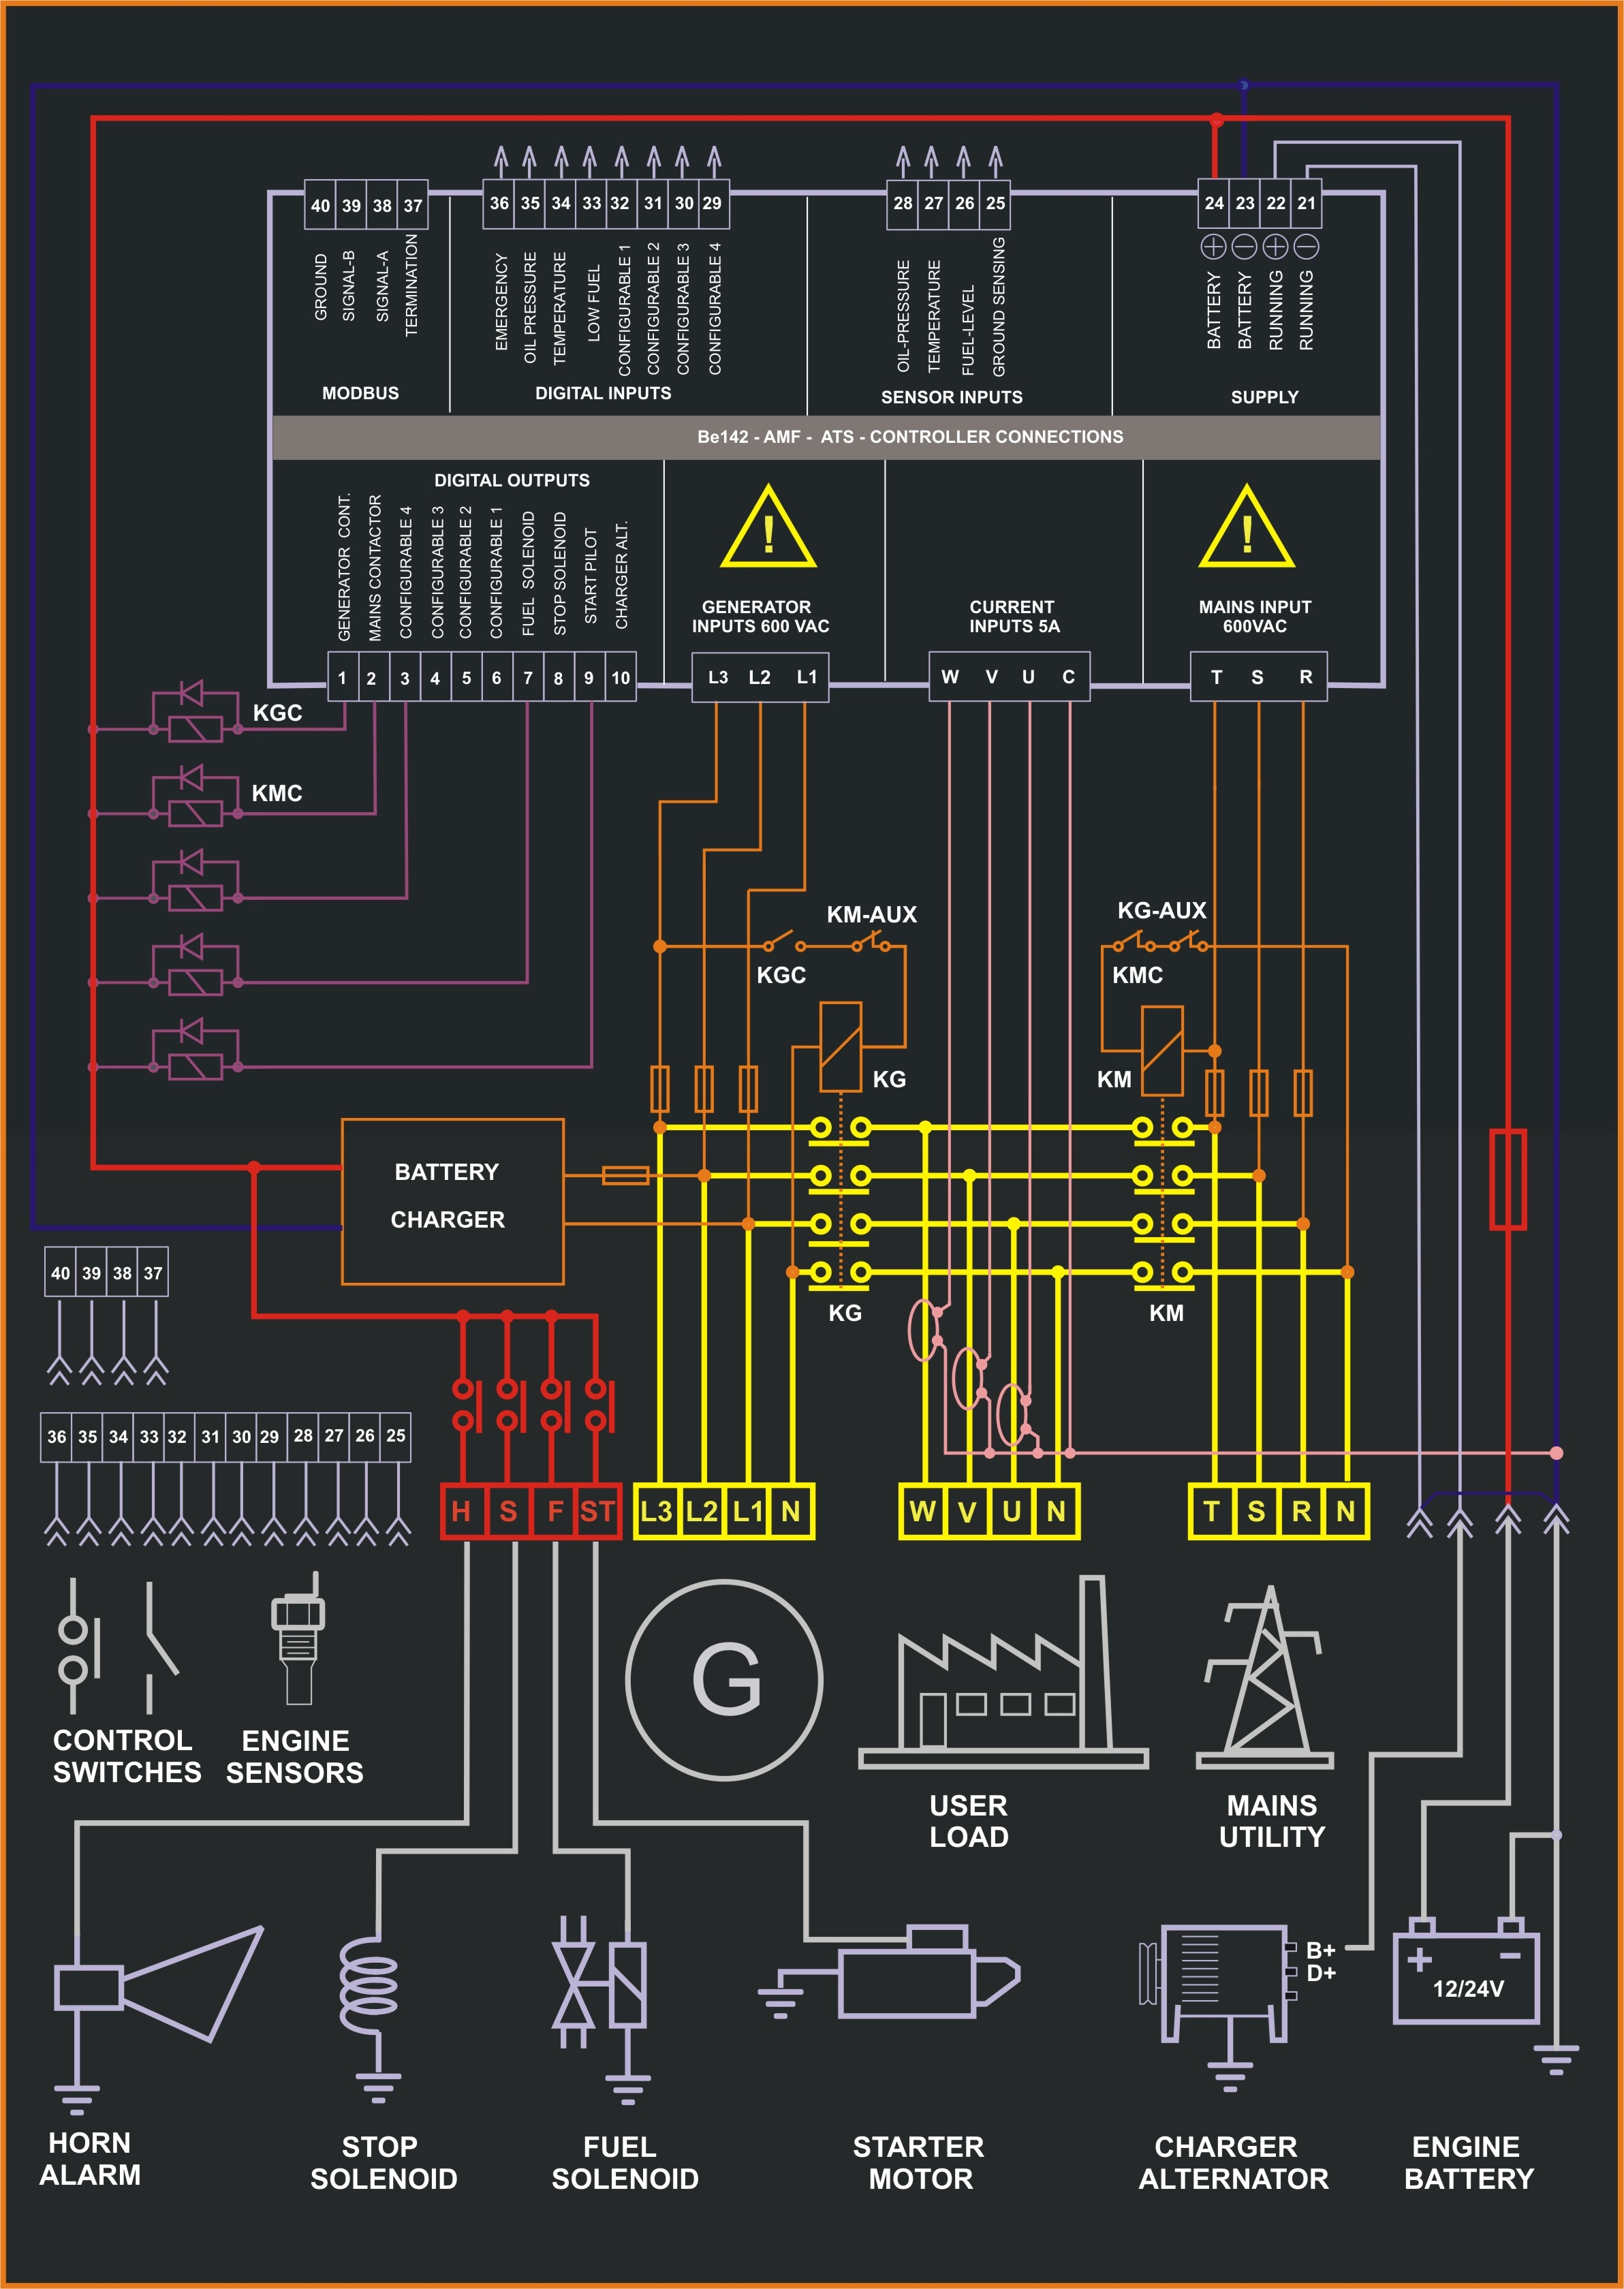 AMF Control Panel Circuit Diagram Be142 automatic mains failure control panel genset controller controller wire diagram for 3246e2 lift at metegol.co